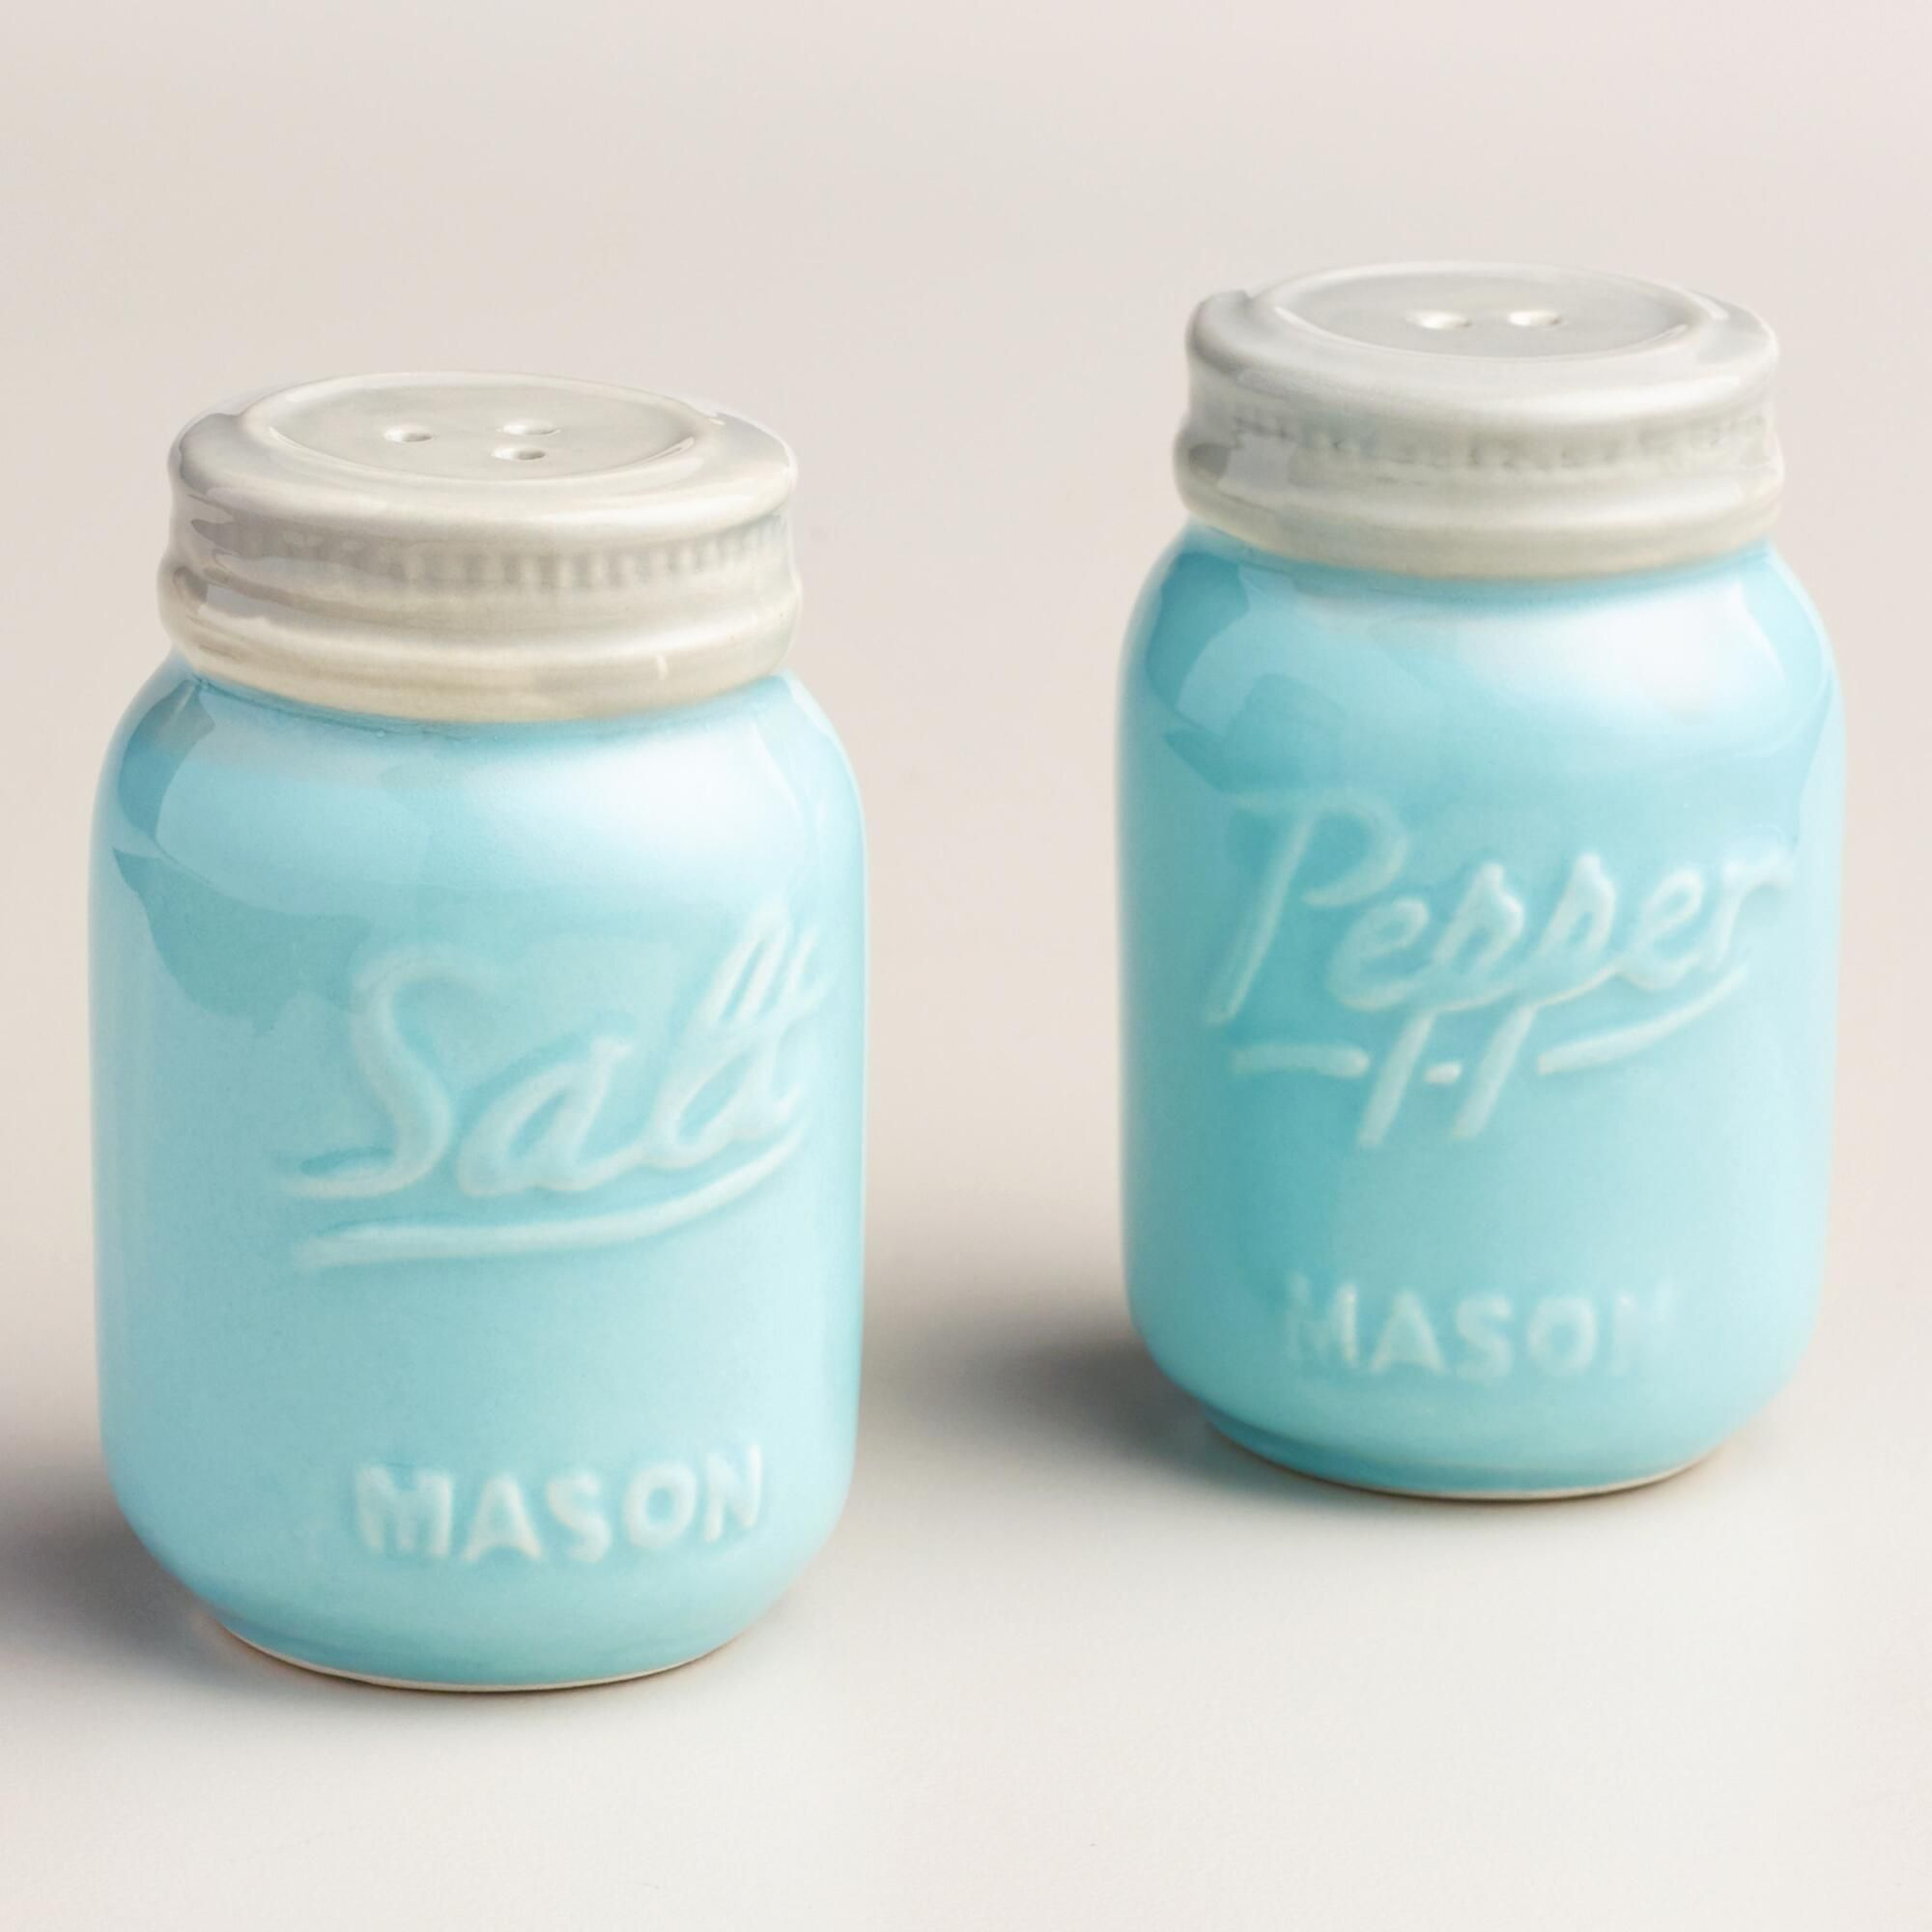 A Great Gift For Collectors, Our Blue Mason Jar Salt